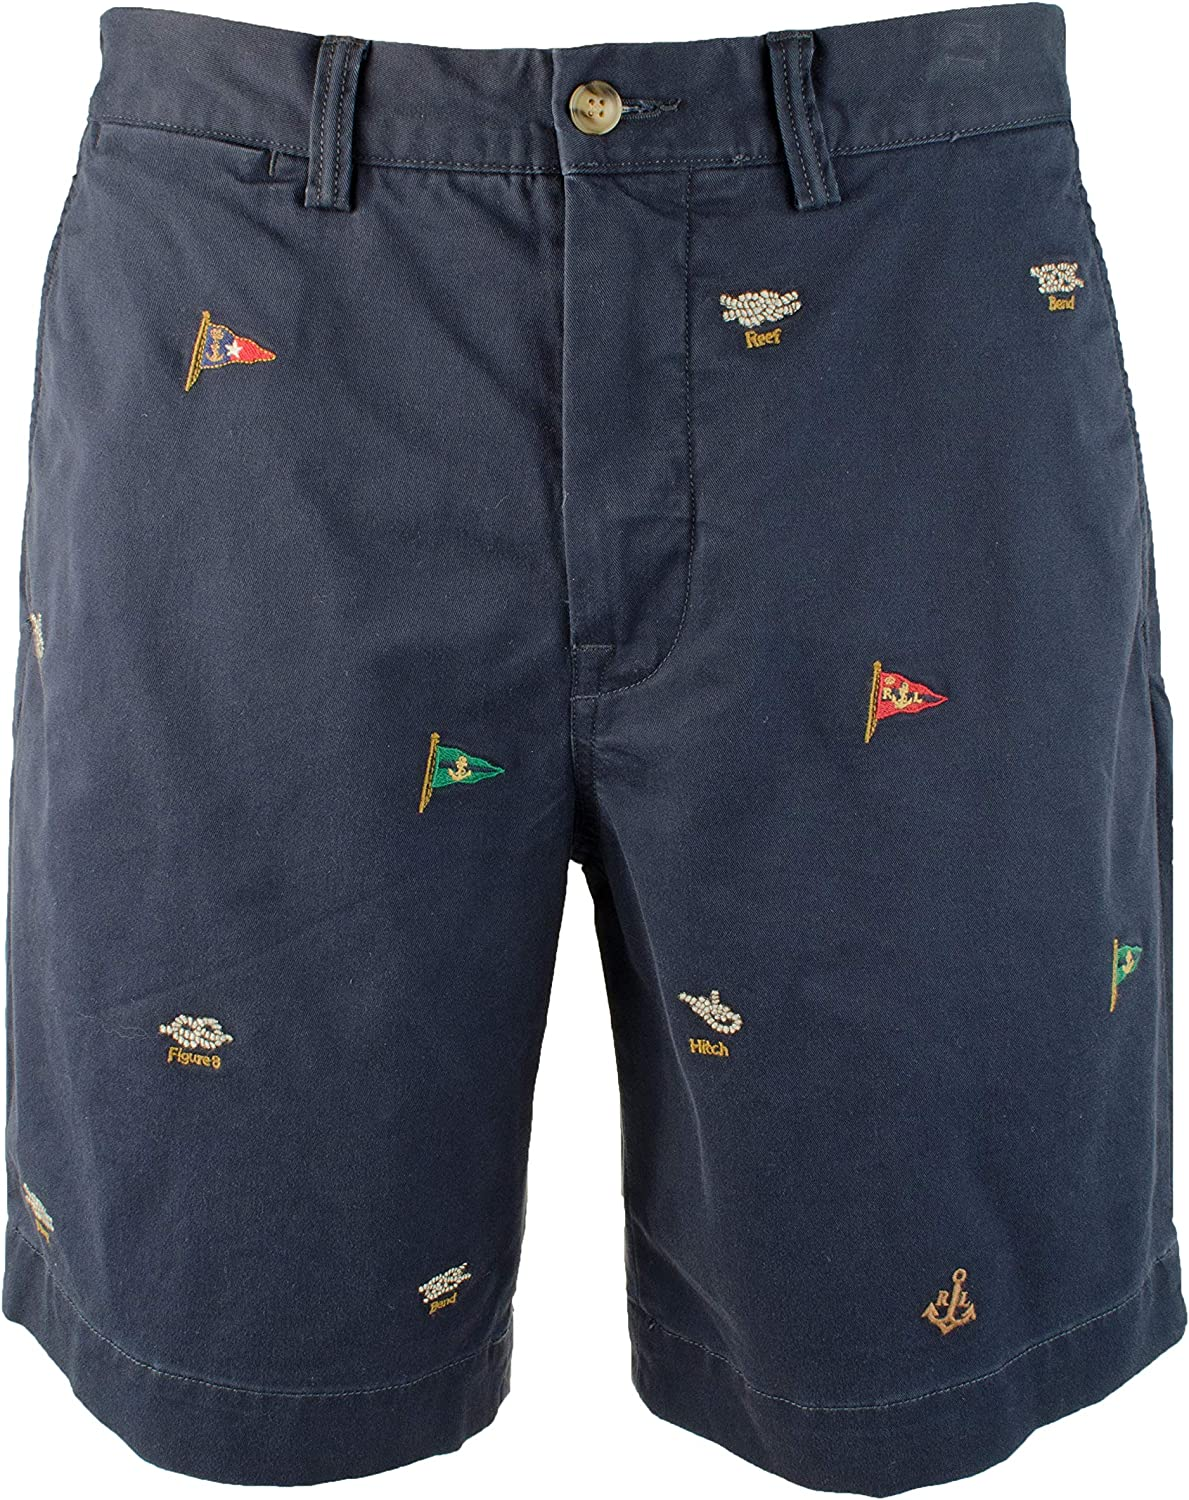 97cd59f1ce Polo Polo Polo Ralph Lauren Men's Embroidered Stretch Classic Fit Shorts (36)  fd6643